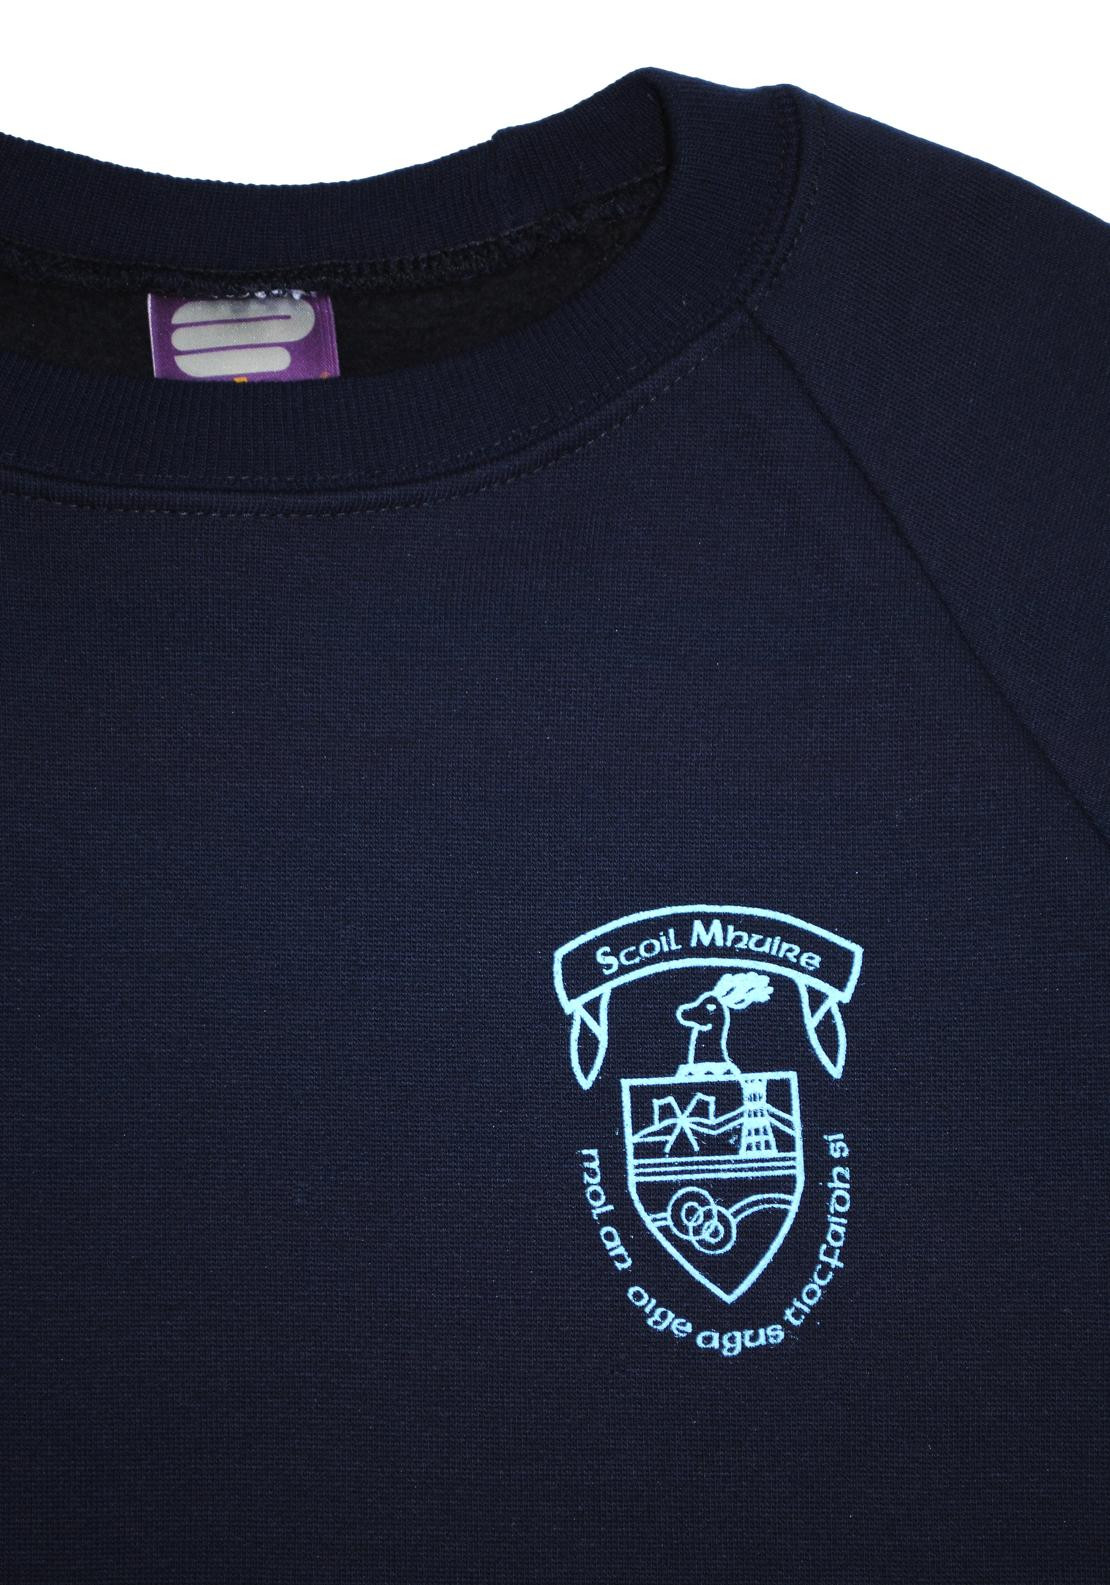 St. Mary's School Stranorlar Crested Jumper, Navy